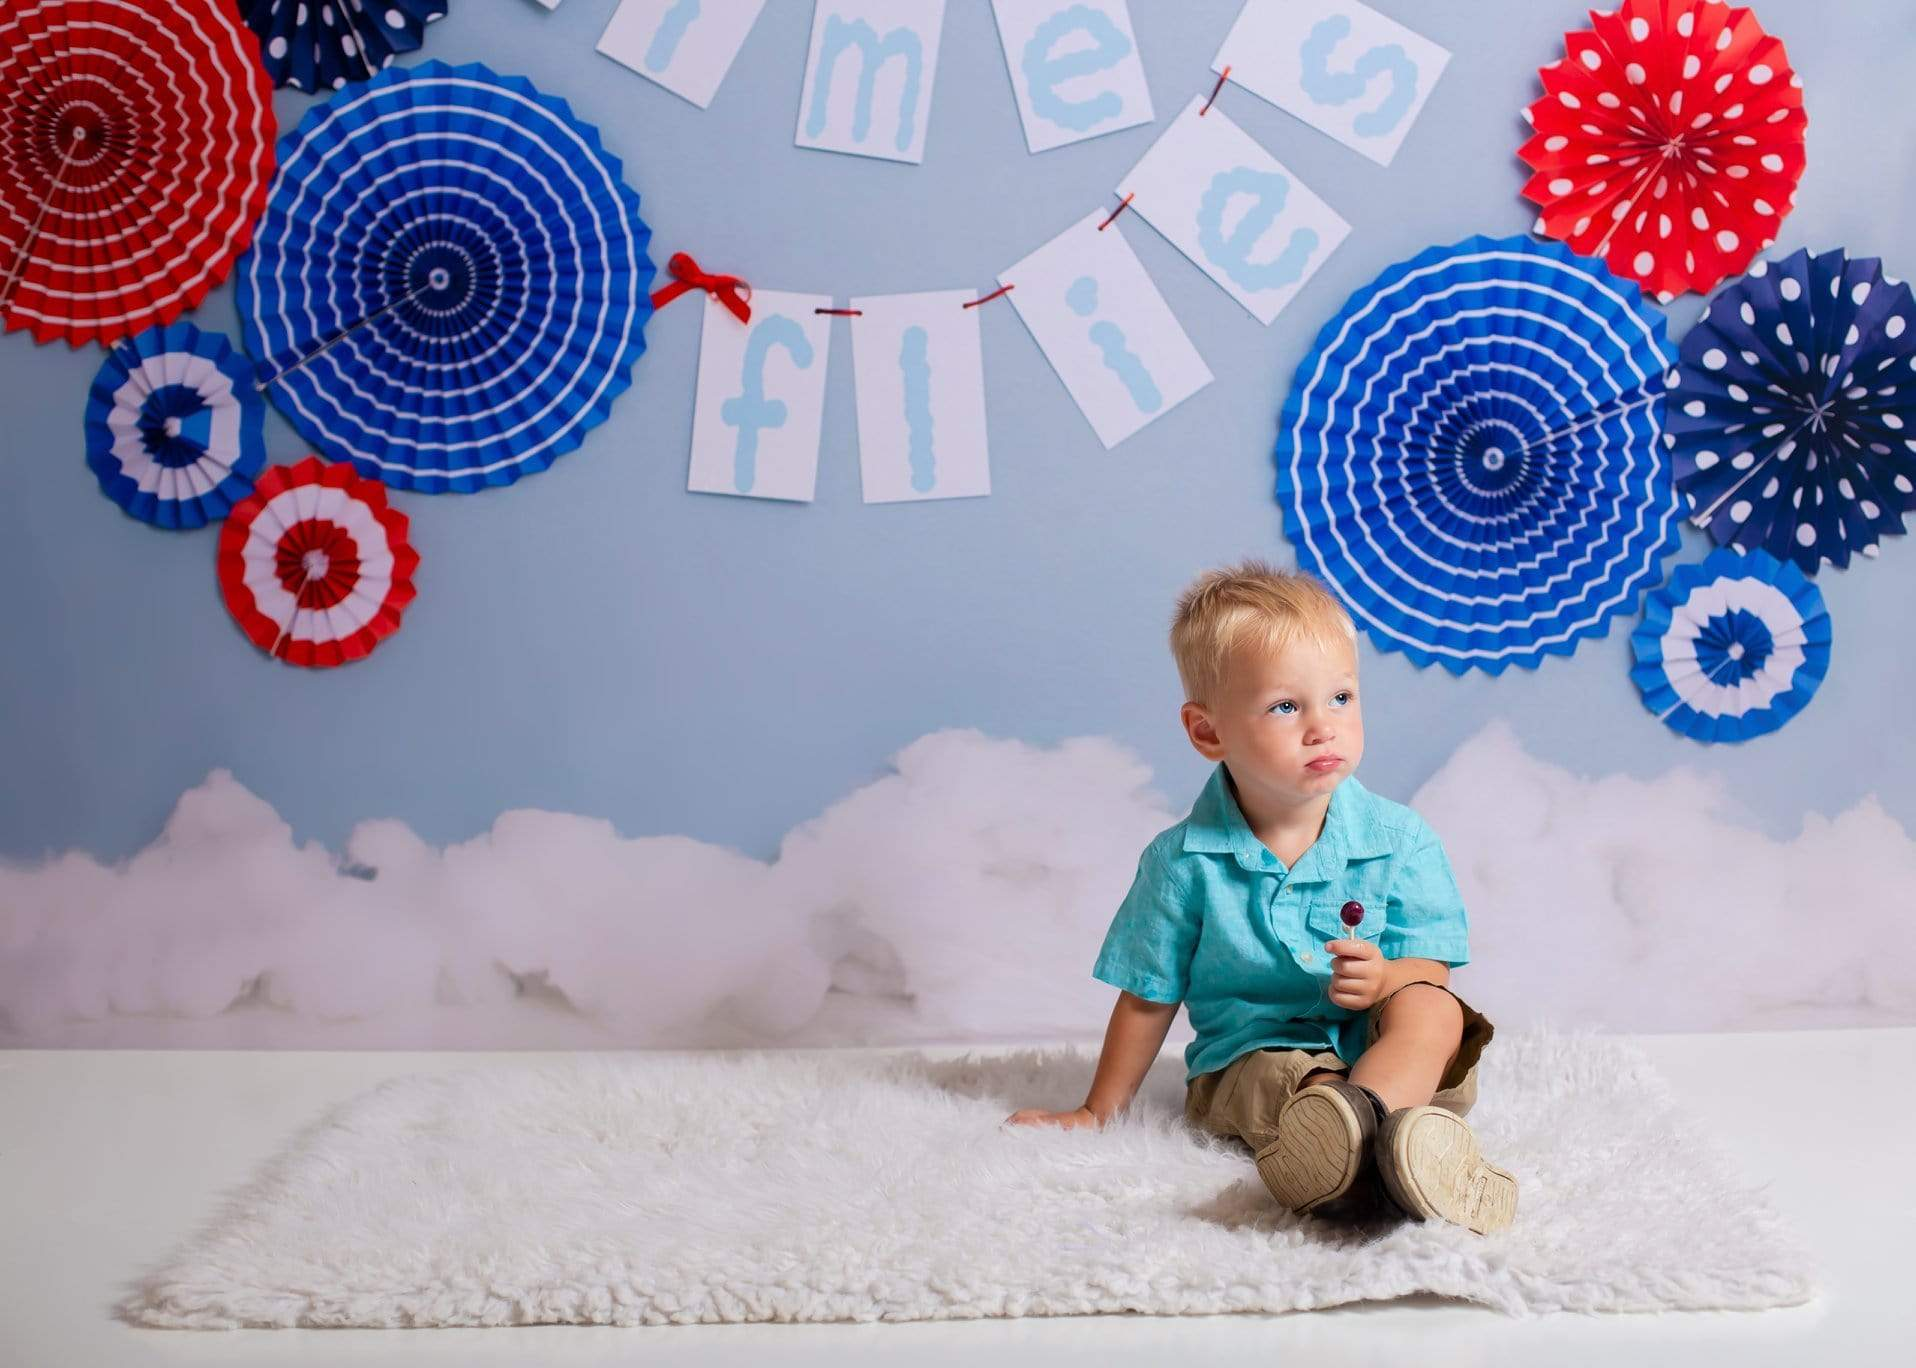 Load image into Gallery viewer, Kate Time Flies Children july of 4th Backdrop for Photography Designed by Lisa B